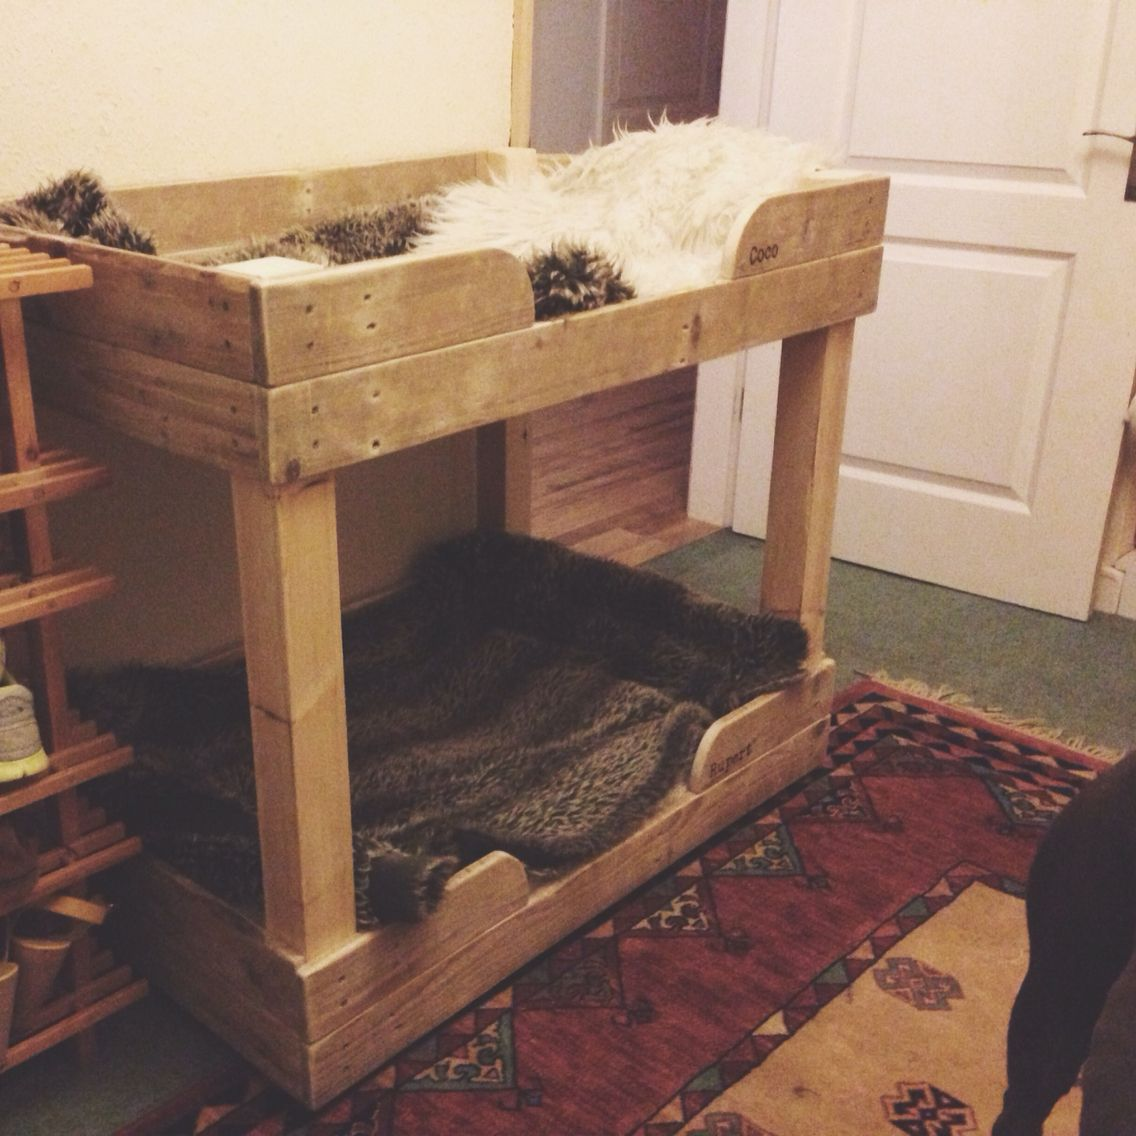 Our Handmade Dog Bunk Beds Made Primarily From Free Reclaimed Pallet Wood And Complete